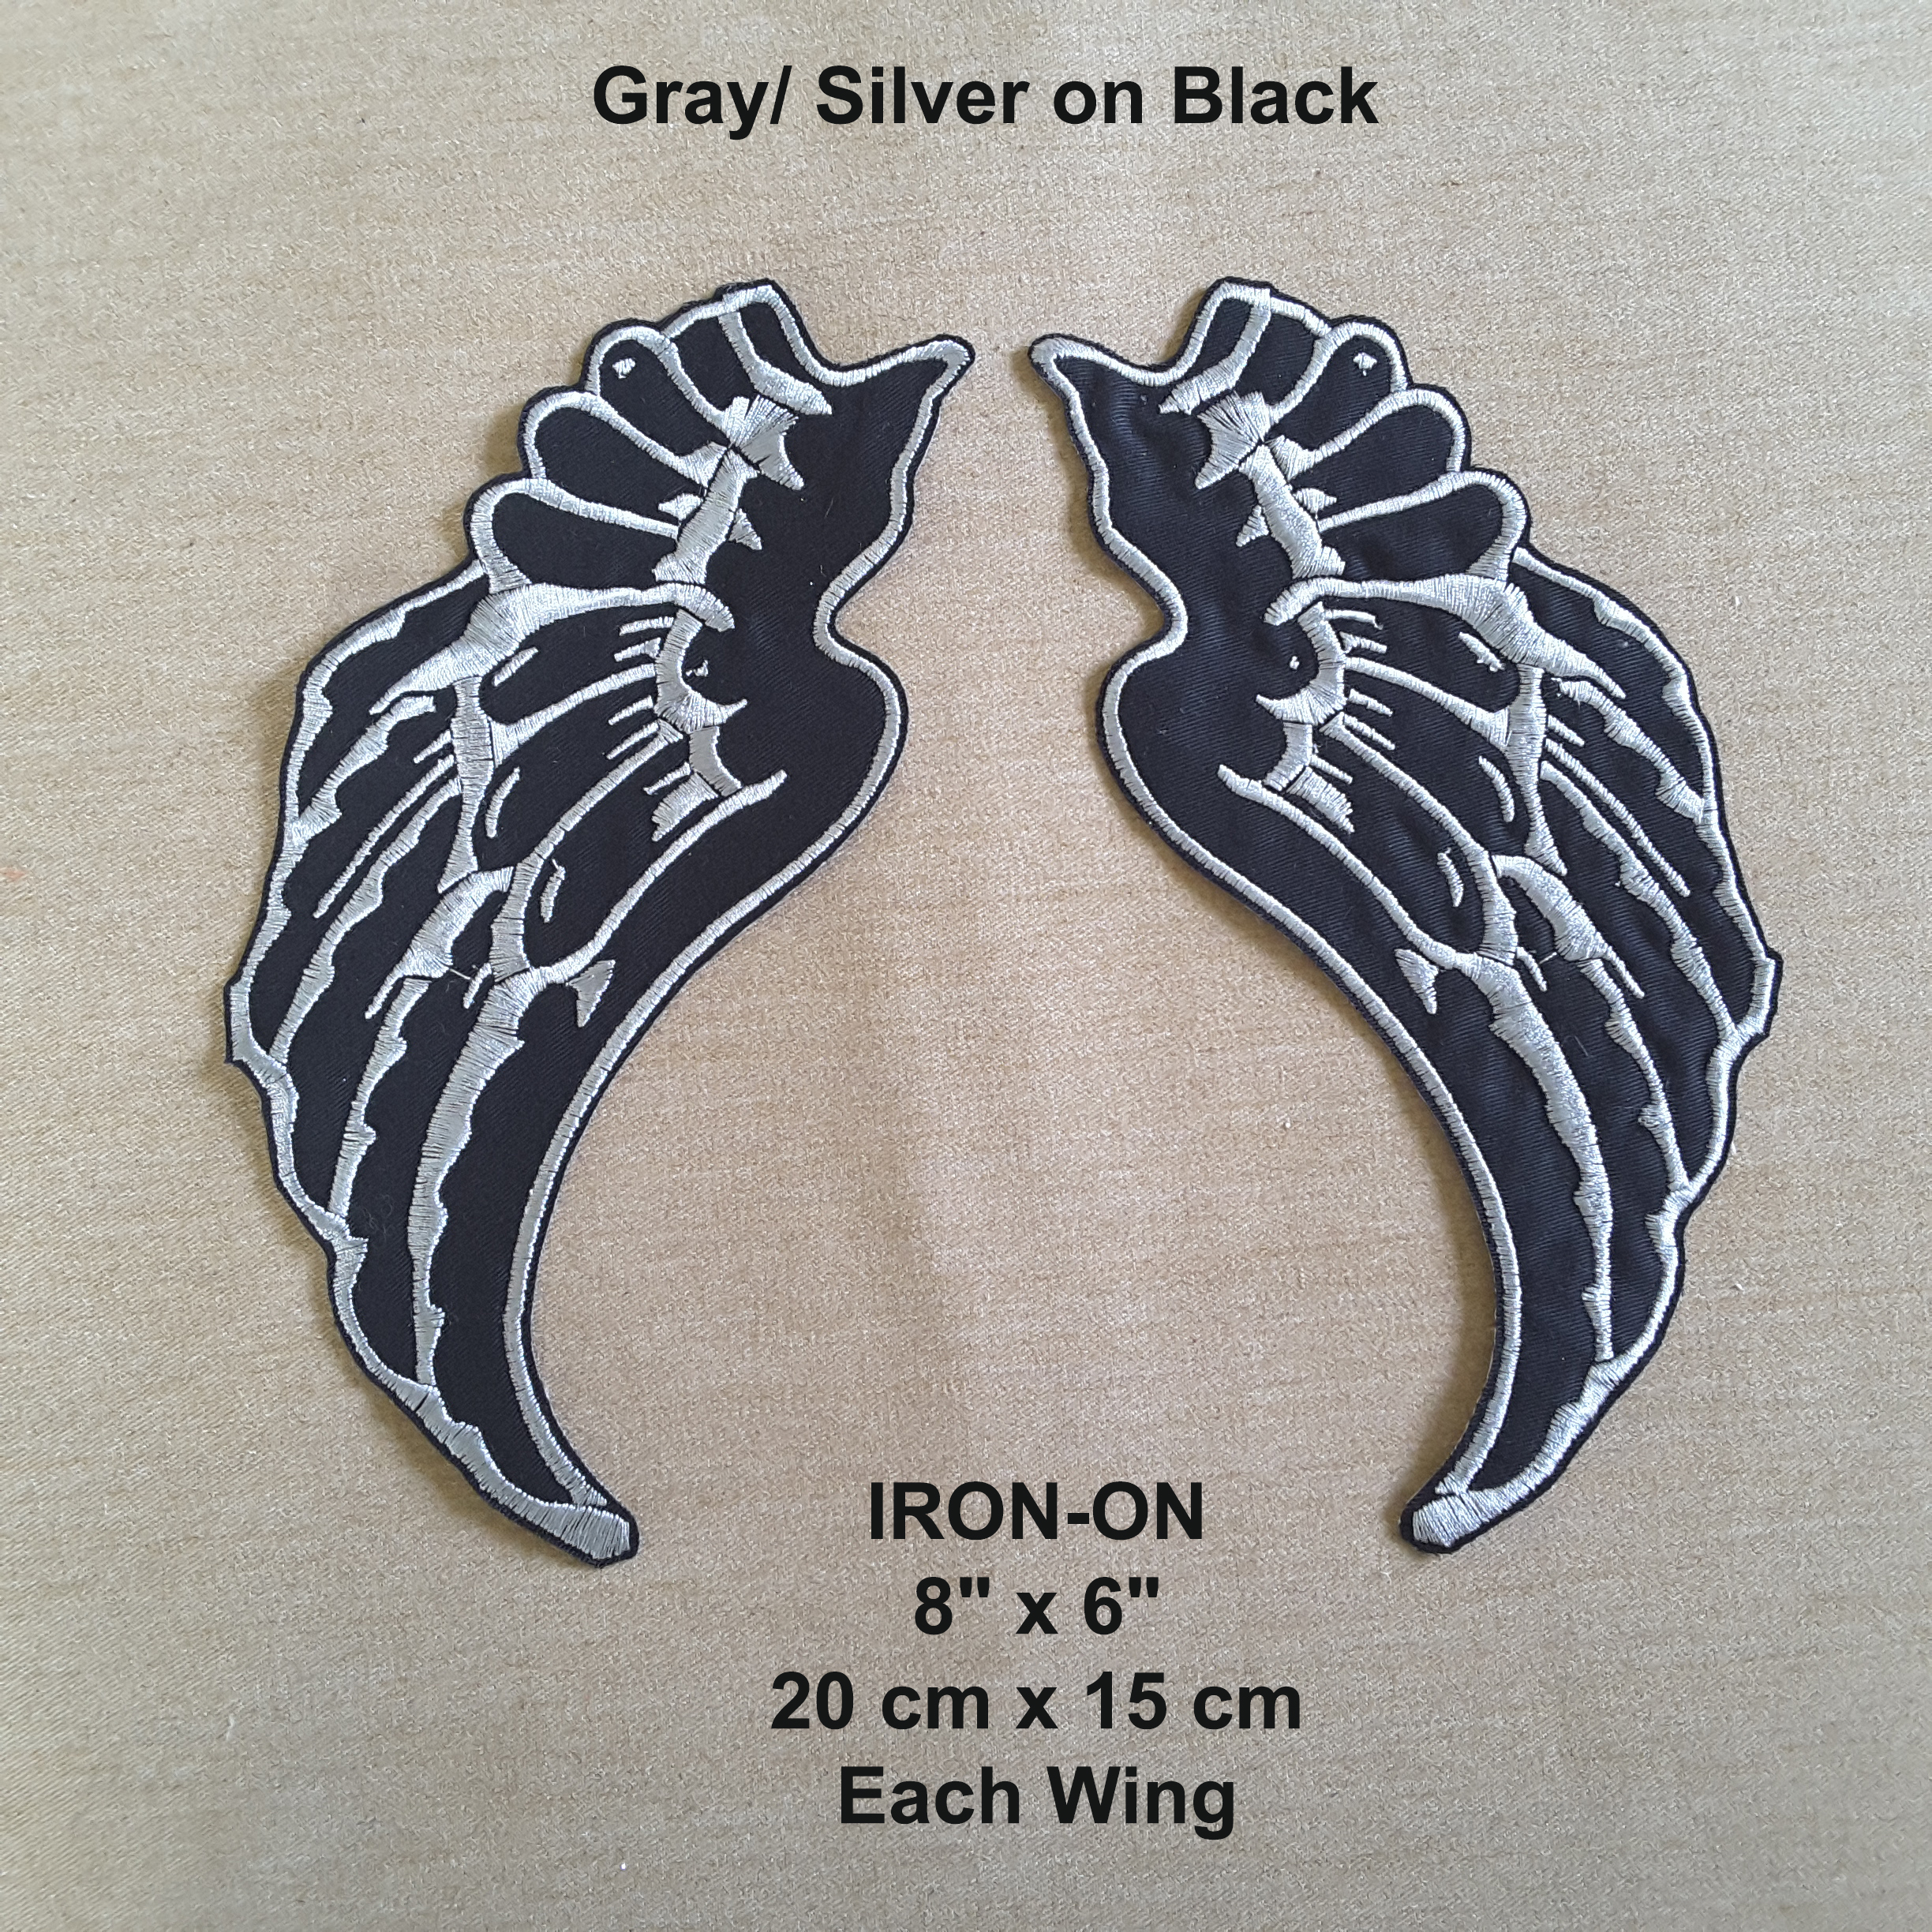 black graysilver halloween costume wings iron on embroidered applique